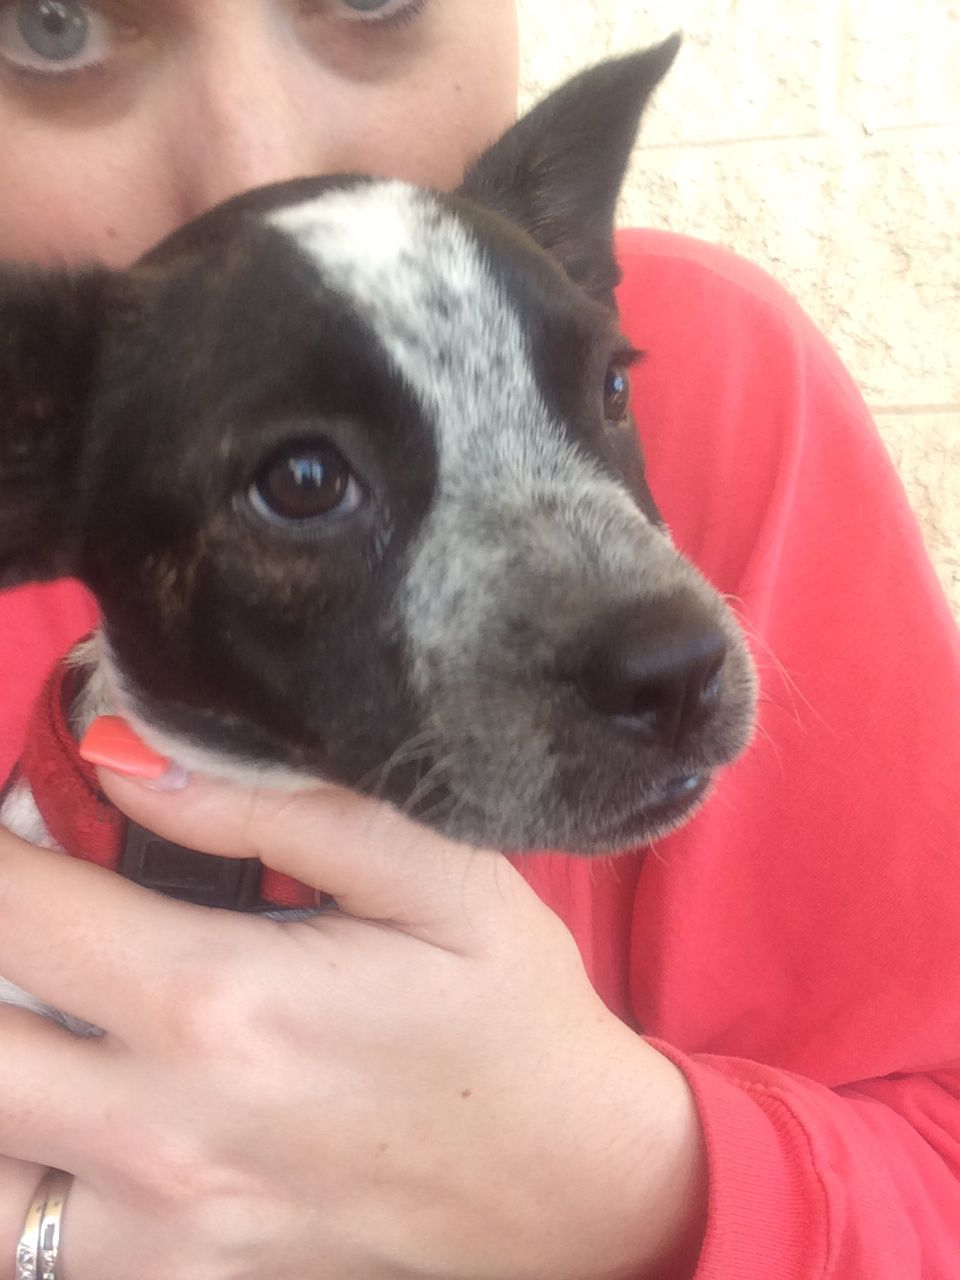 Our new fur baby! Blue heeler boston terrier mix! She's